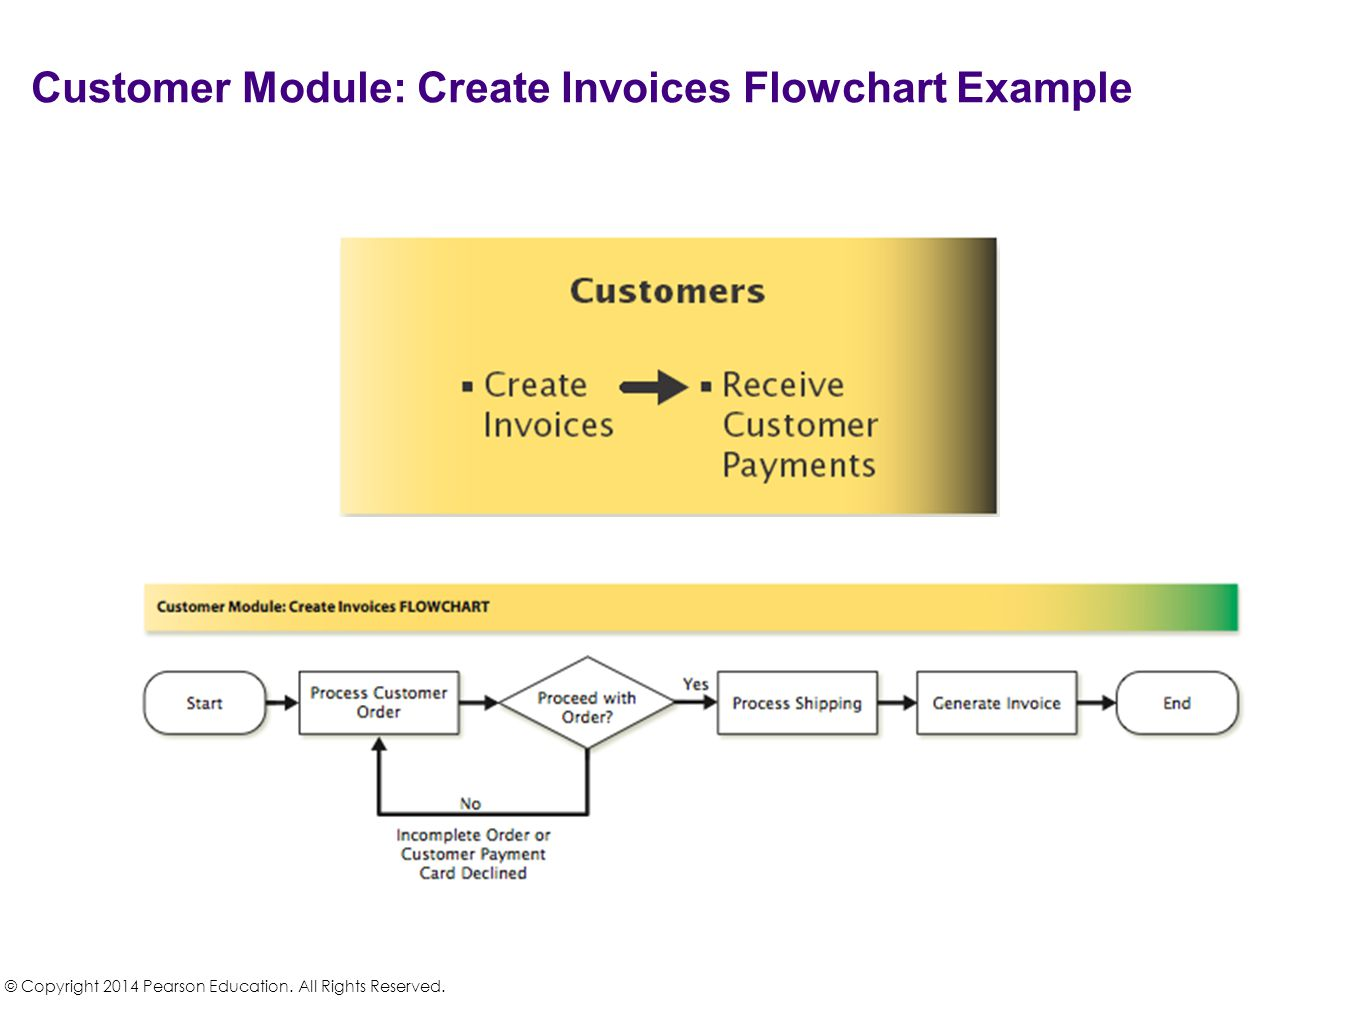 Customer Module: Create Invoices Flowchart Example